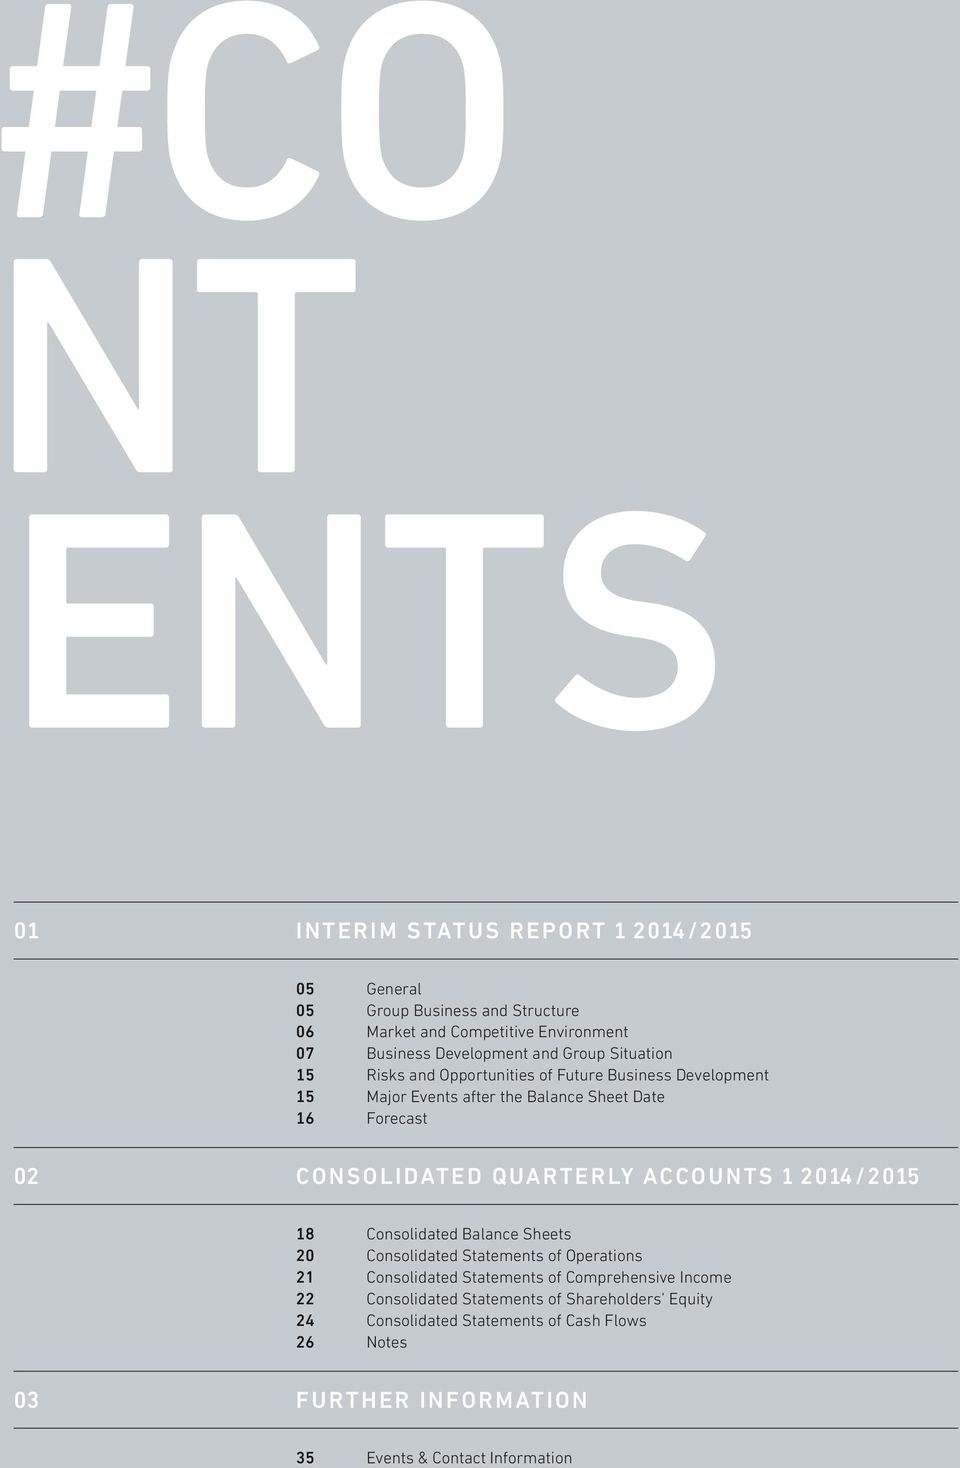 Quarterly Accounts 1 2014/2015 18 Consolidated Balance Sheets 20 Consolidated Statements of Operations 21 Consolidated Statements of Comprehensive Income